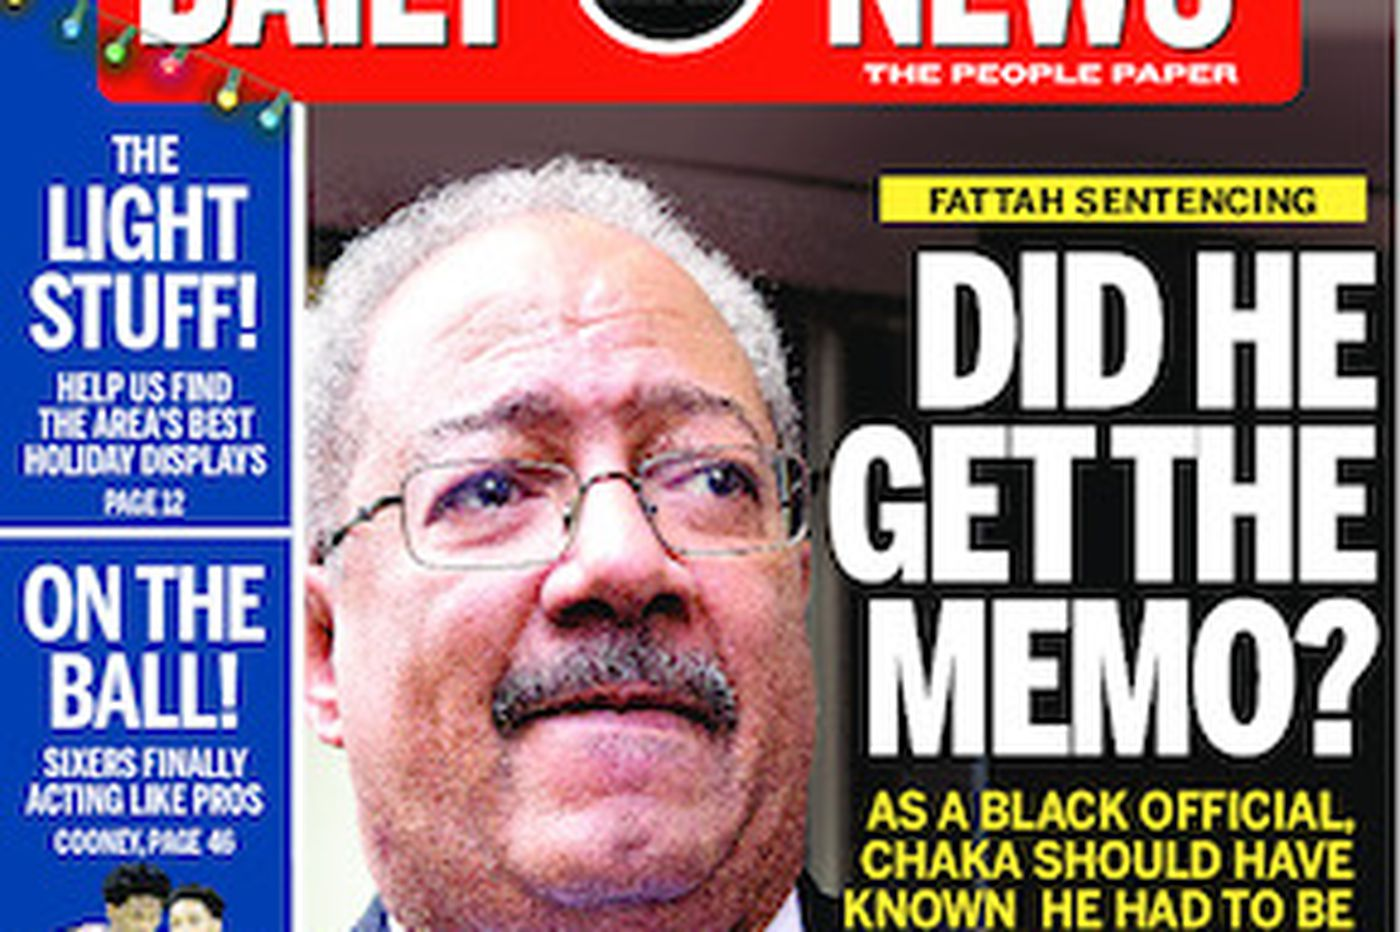 Dailynews Monthly Covers 12/13/16